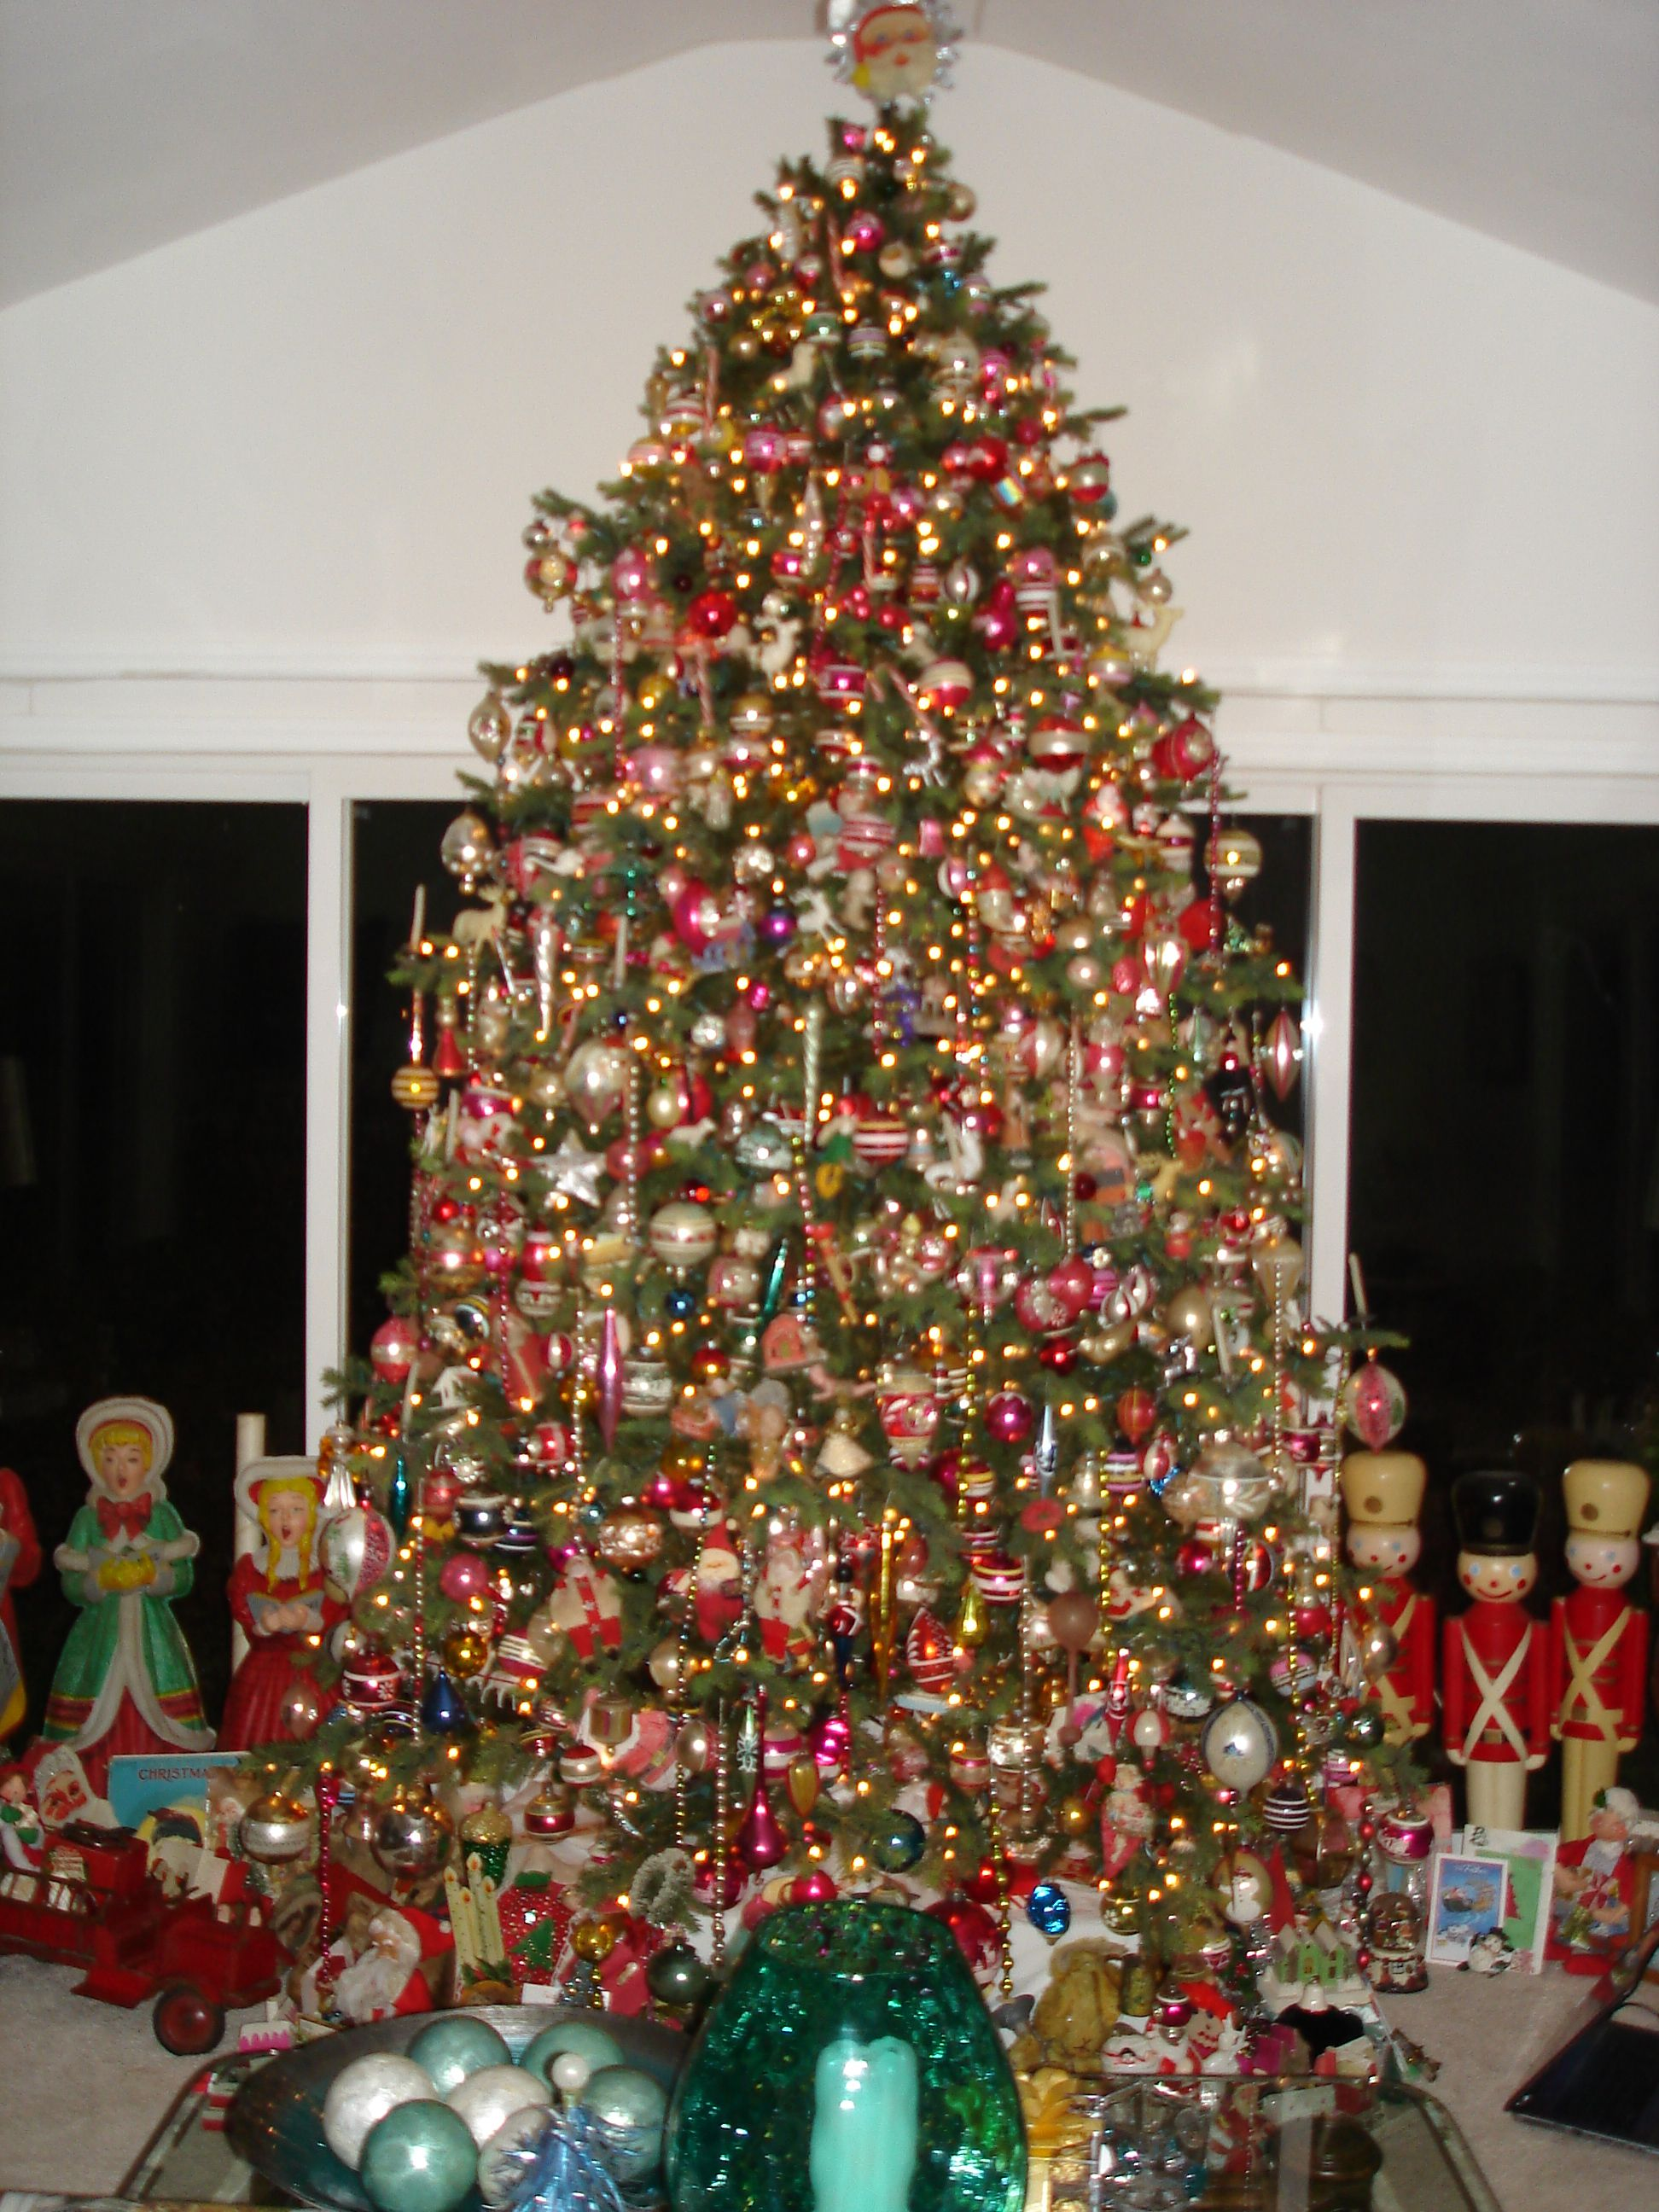 live 10 foot tree in family room all antique ornaments - How To Decorate A 10 Foot Christmas Tree